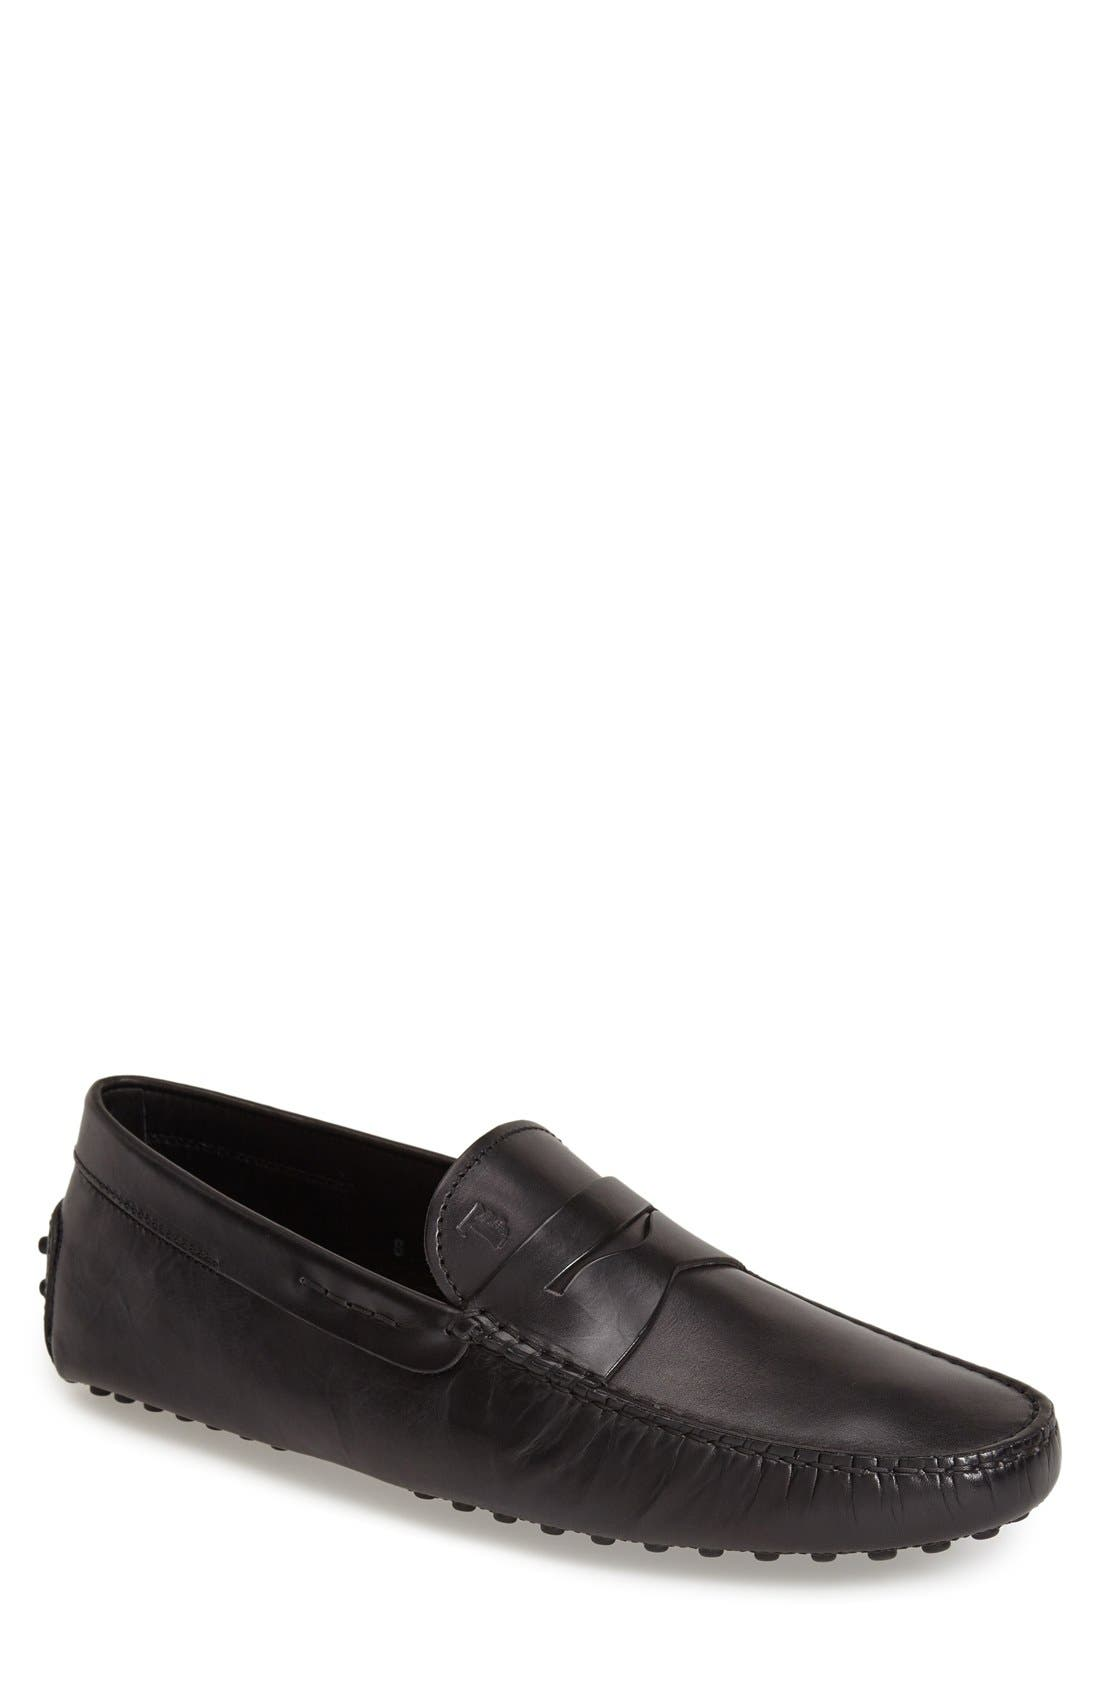 Main Image - Tod's 'Gommini' Penny Driving Moccasin